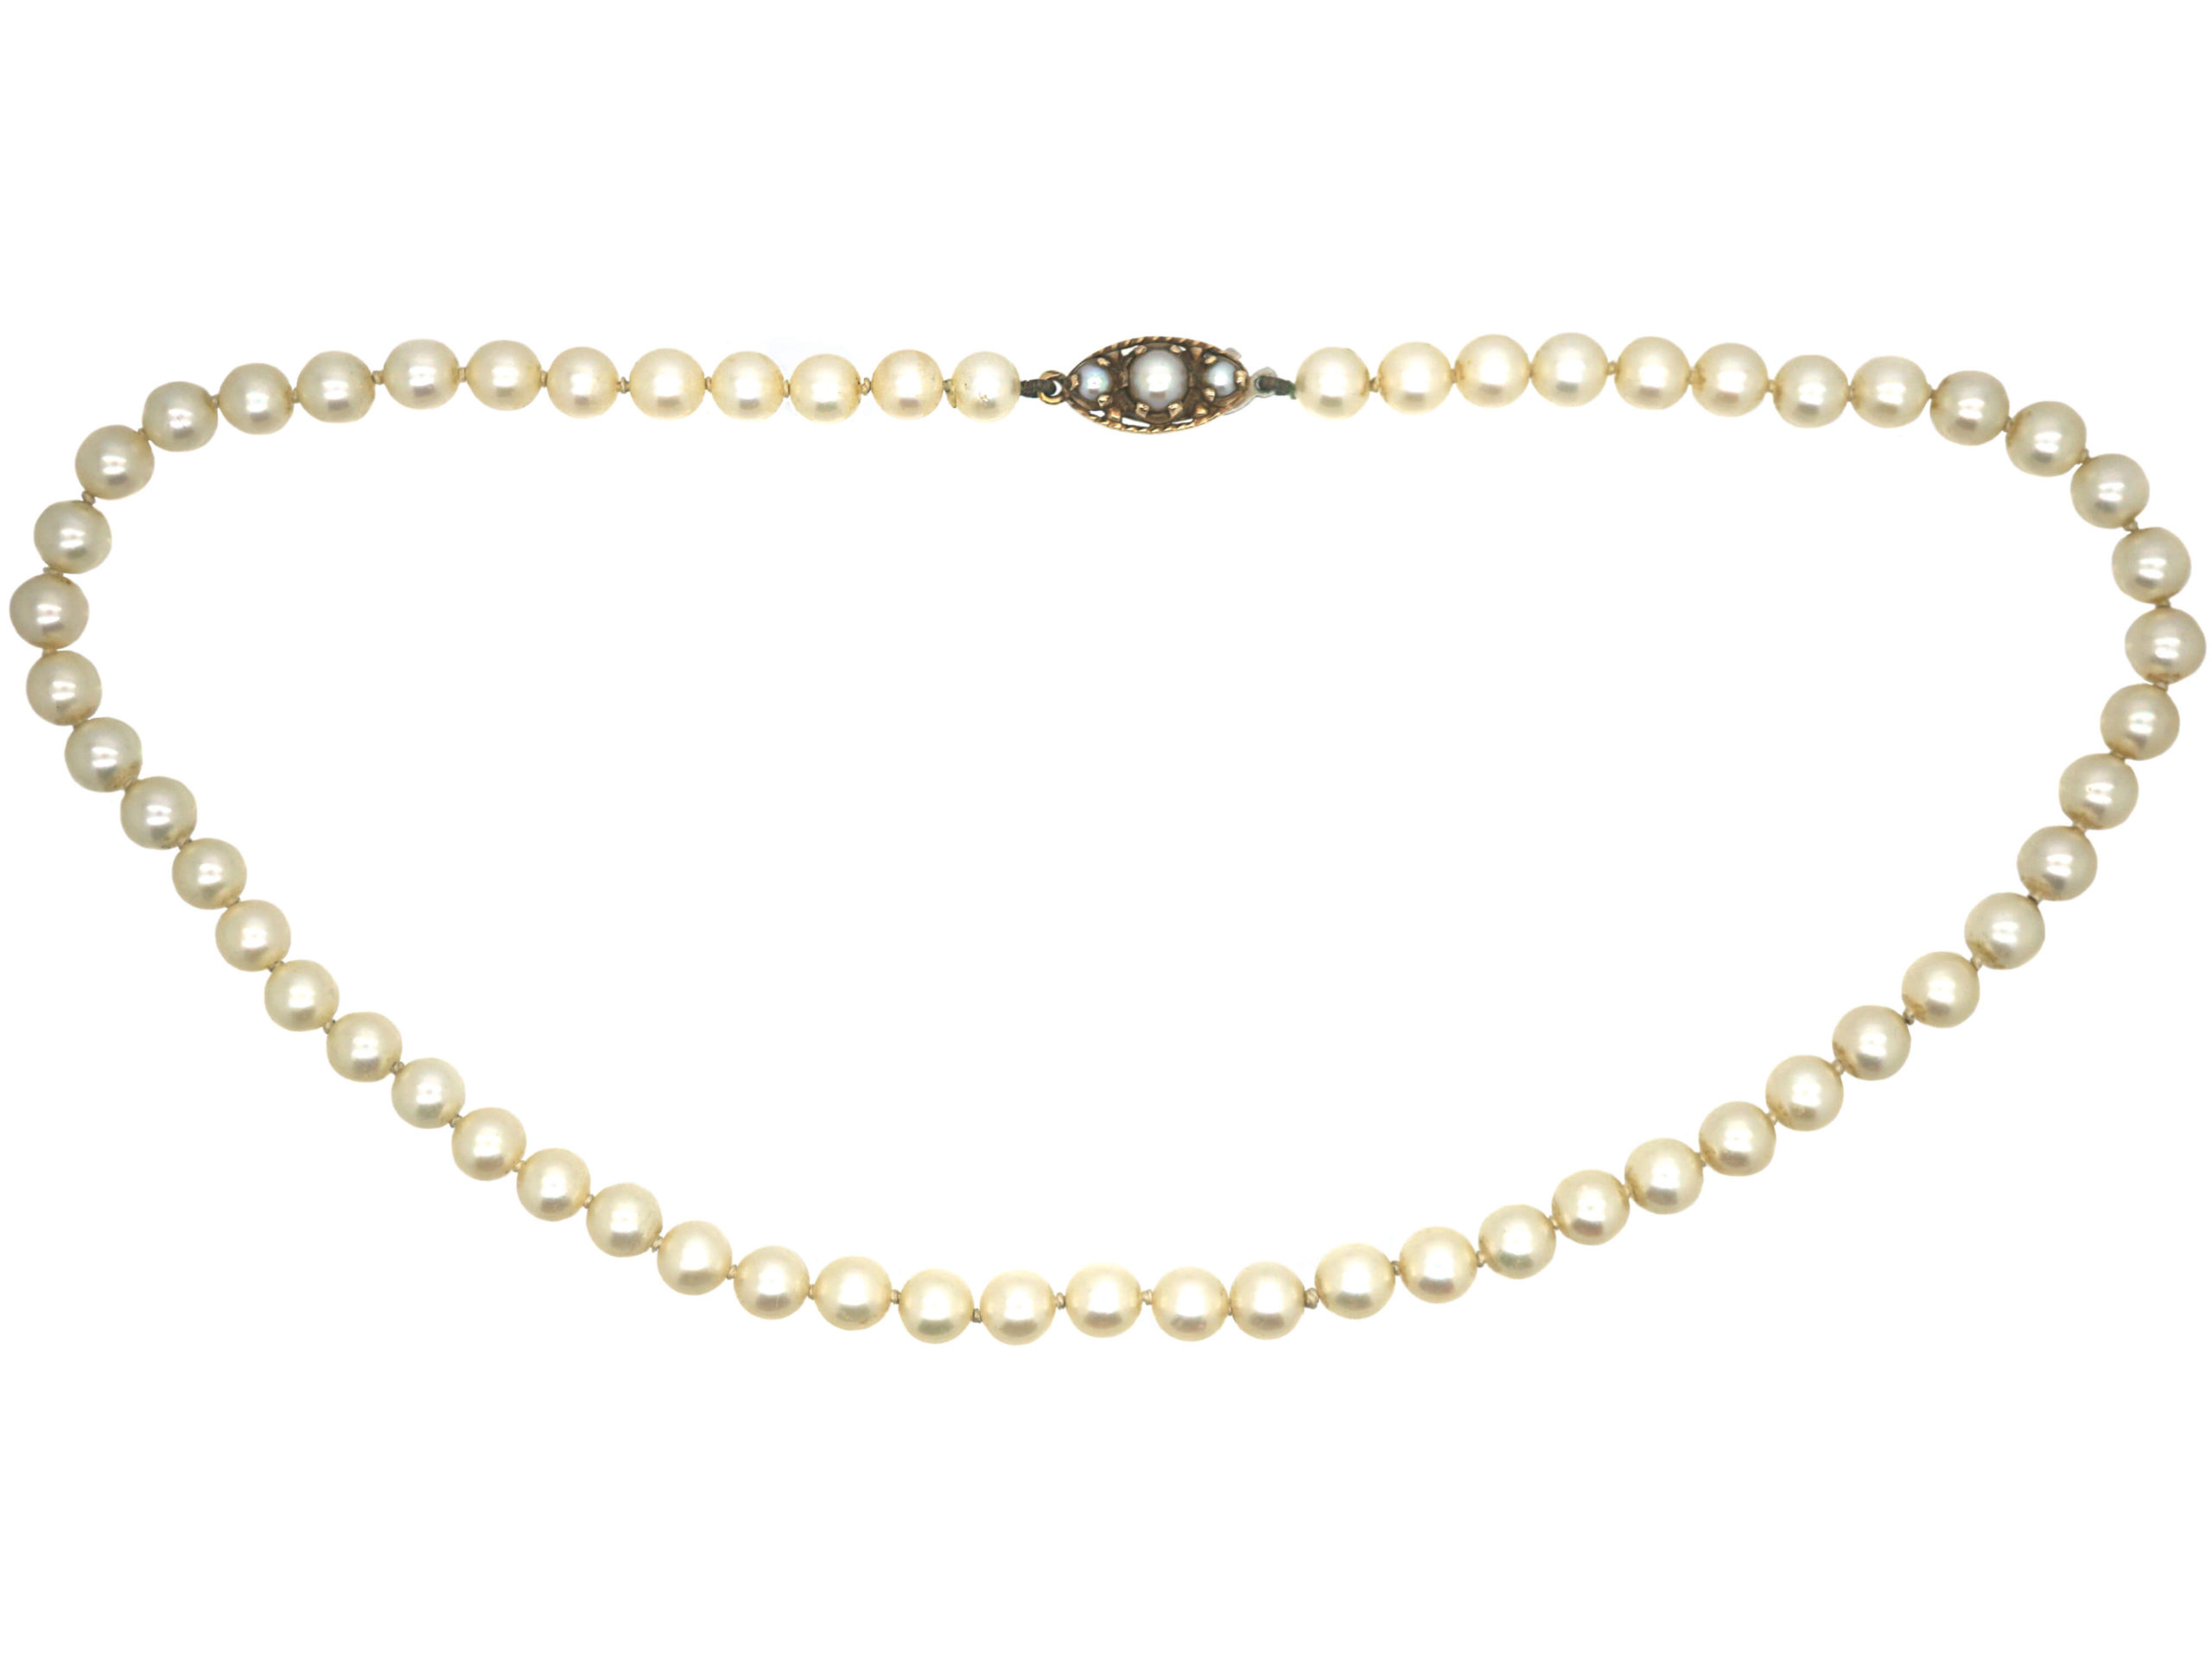 Cultured Pearl Necklace with 9ct Gold & Pearl Clasp